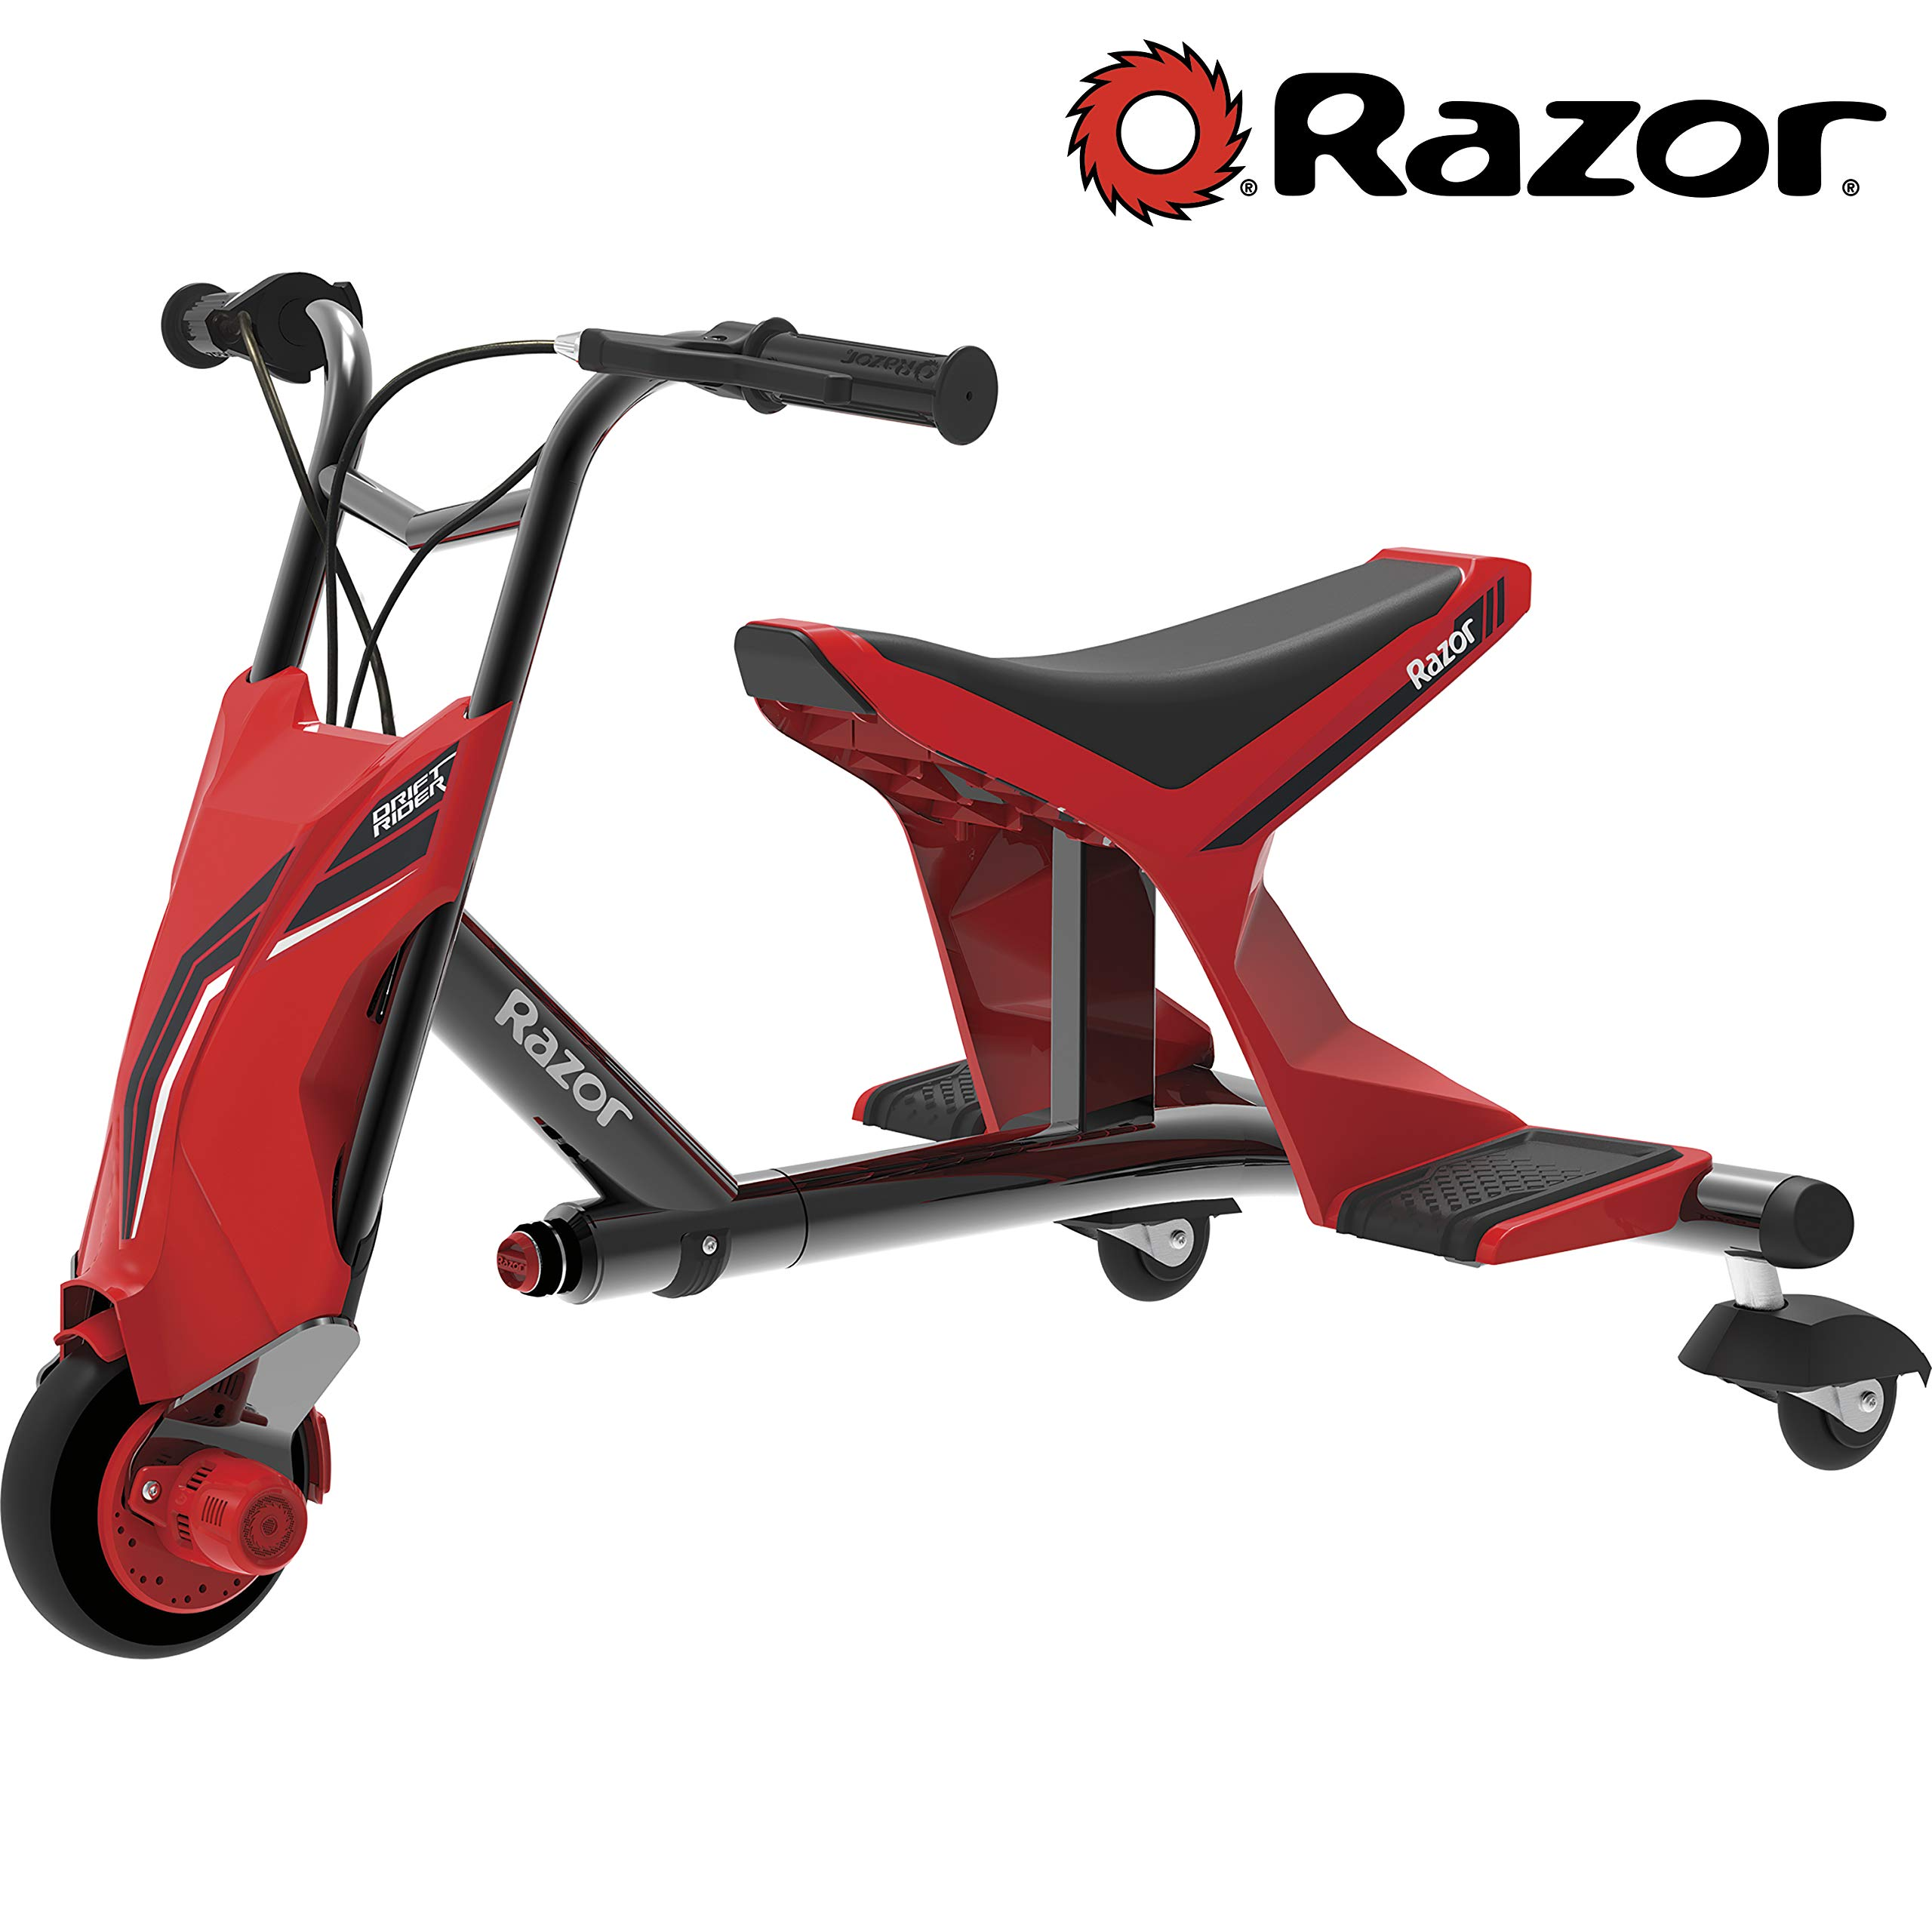 Razor Drift Rider - Red/Black by Razor